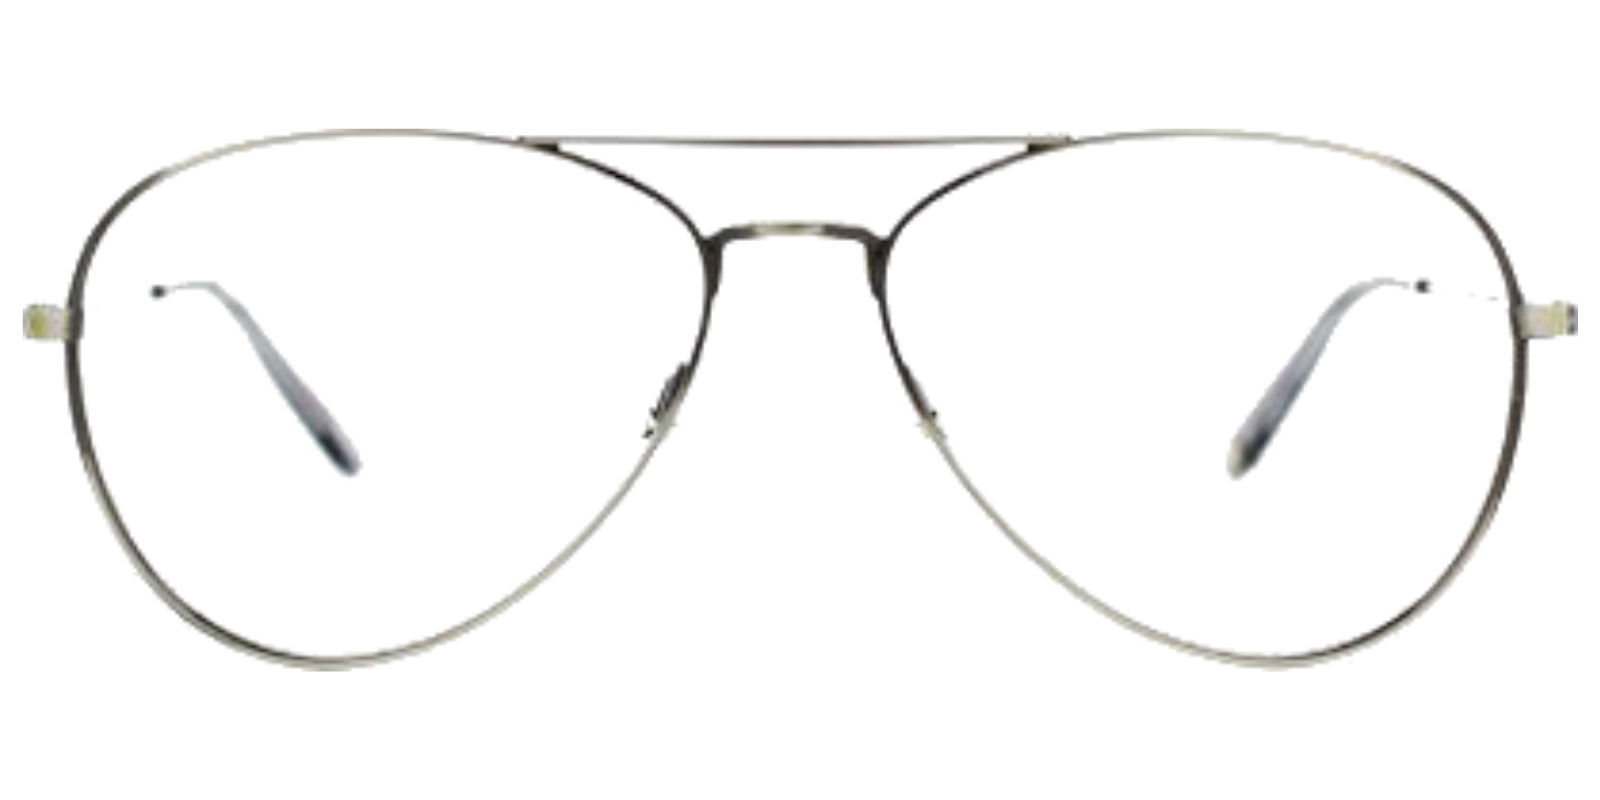 Wire Frame Glasses Trend : The Biggest Eyewear Trends of the Season and Where to Shop ...